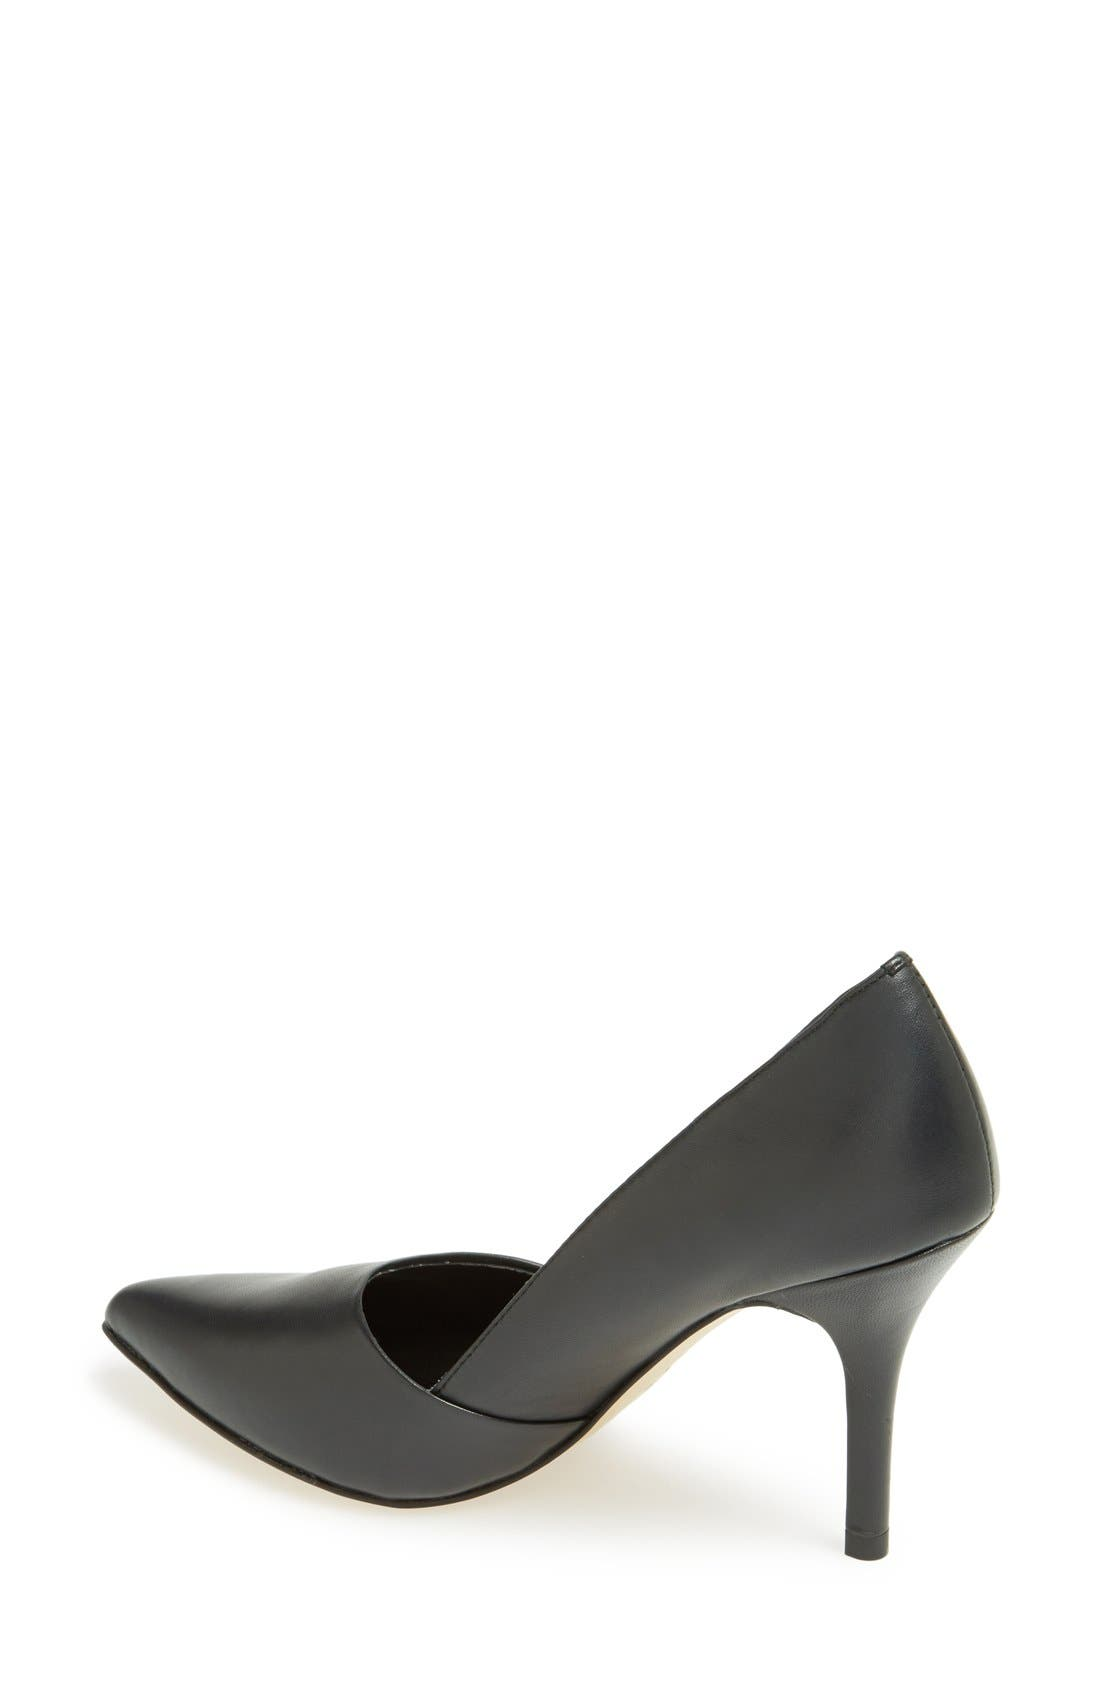 'Devin' Pointy Toe Pump,                             Alternate thumbnail 3, color,                             001